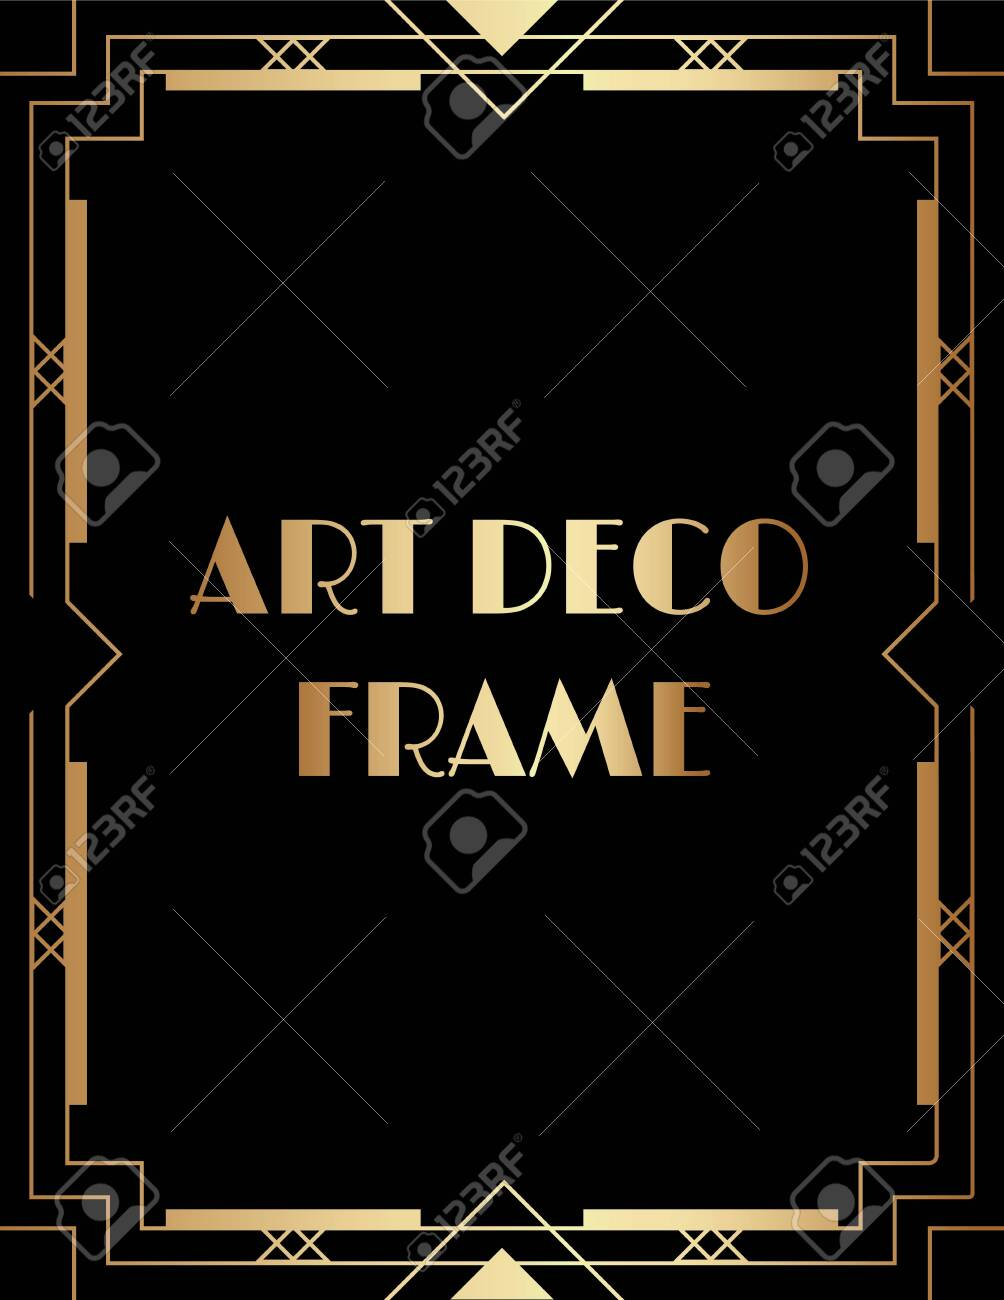 Geometric Gatsby Art Deco Style Print Frame Design Royalty Free Cliparts Vectors And Stock Illustration Image 147073363